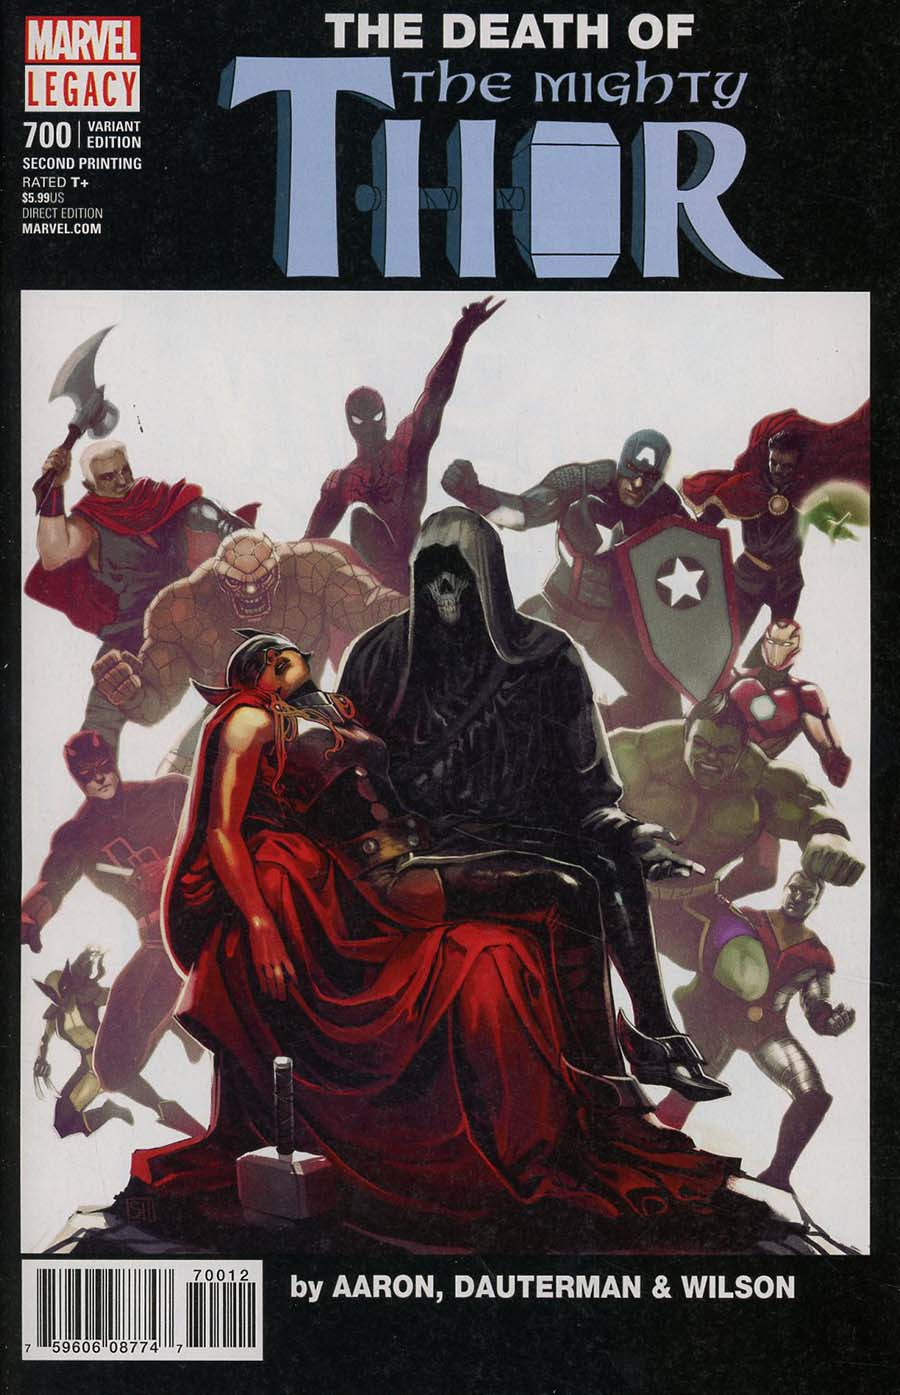 Mighty Thor Vol 2 #700 Cover K 2nd Ptg Variant Stephanie Hans Cover (Marvel Legacy Tie-In)